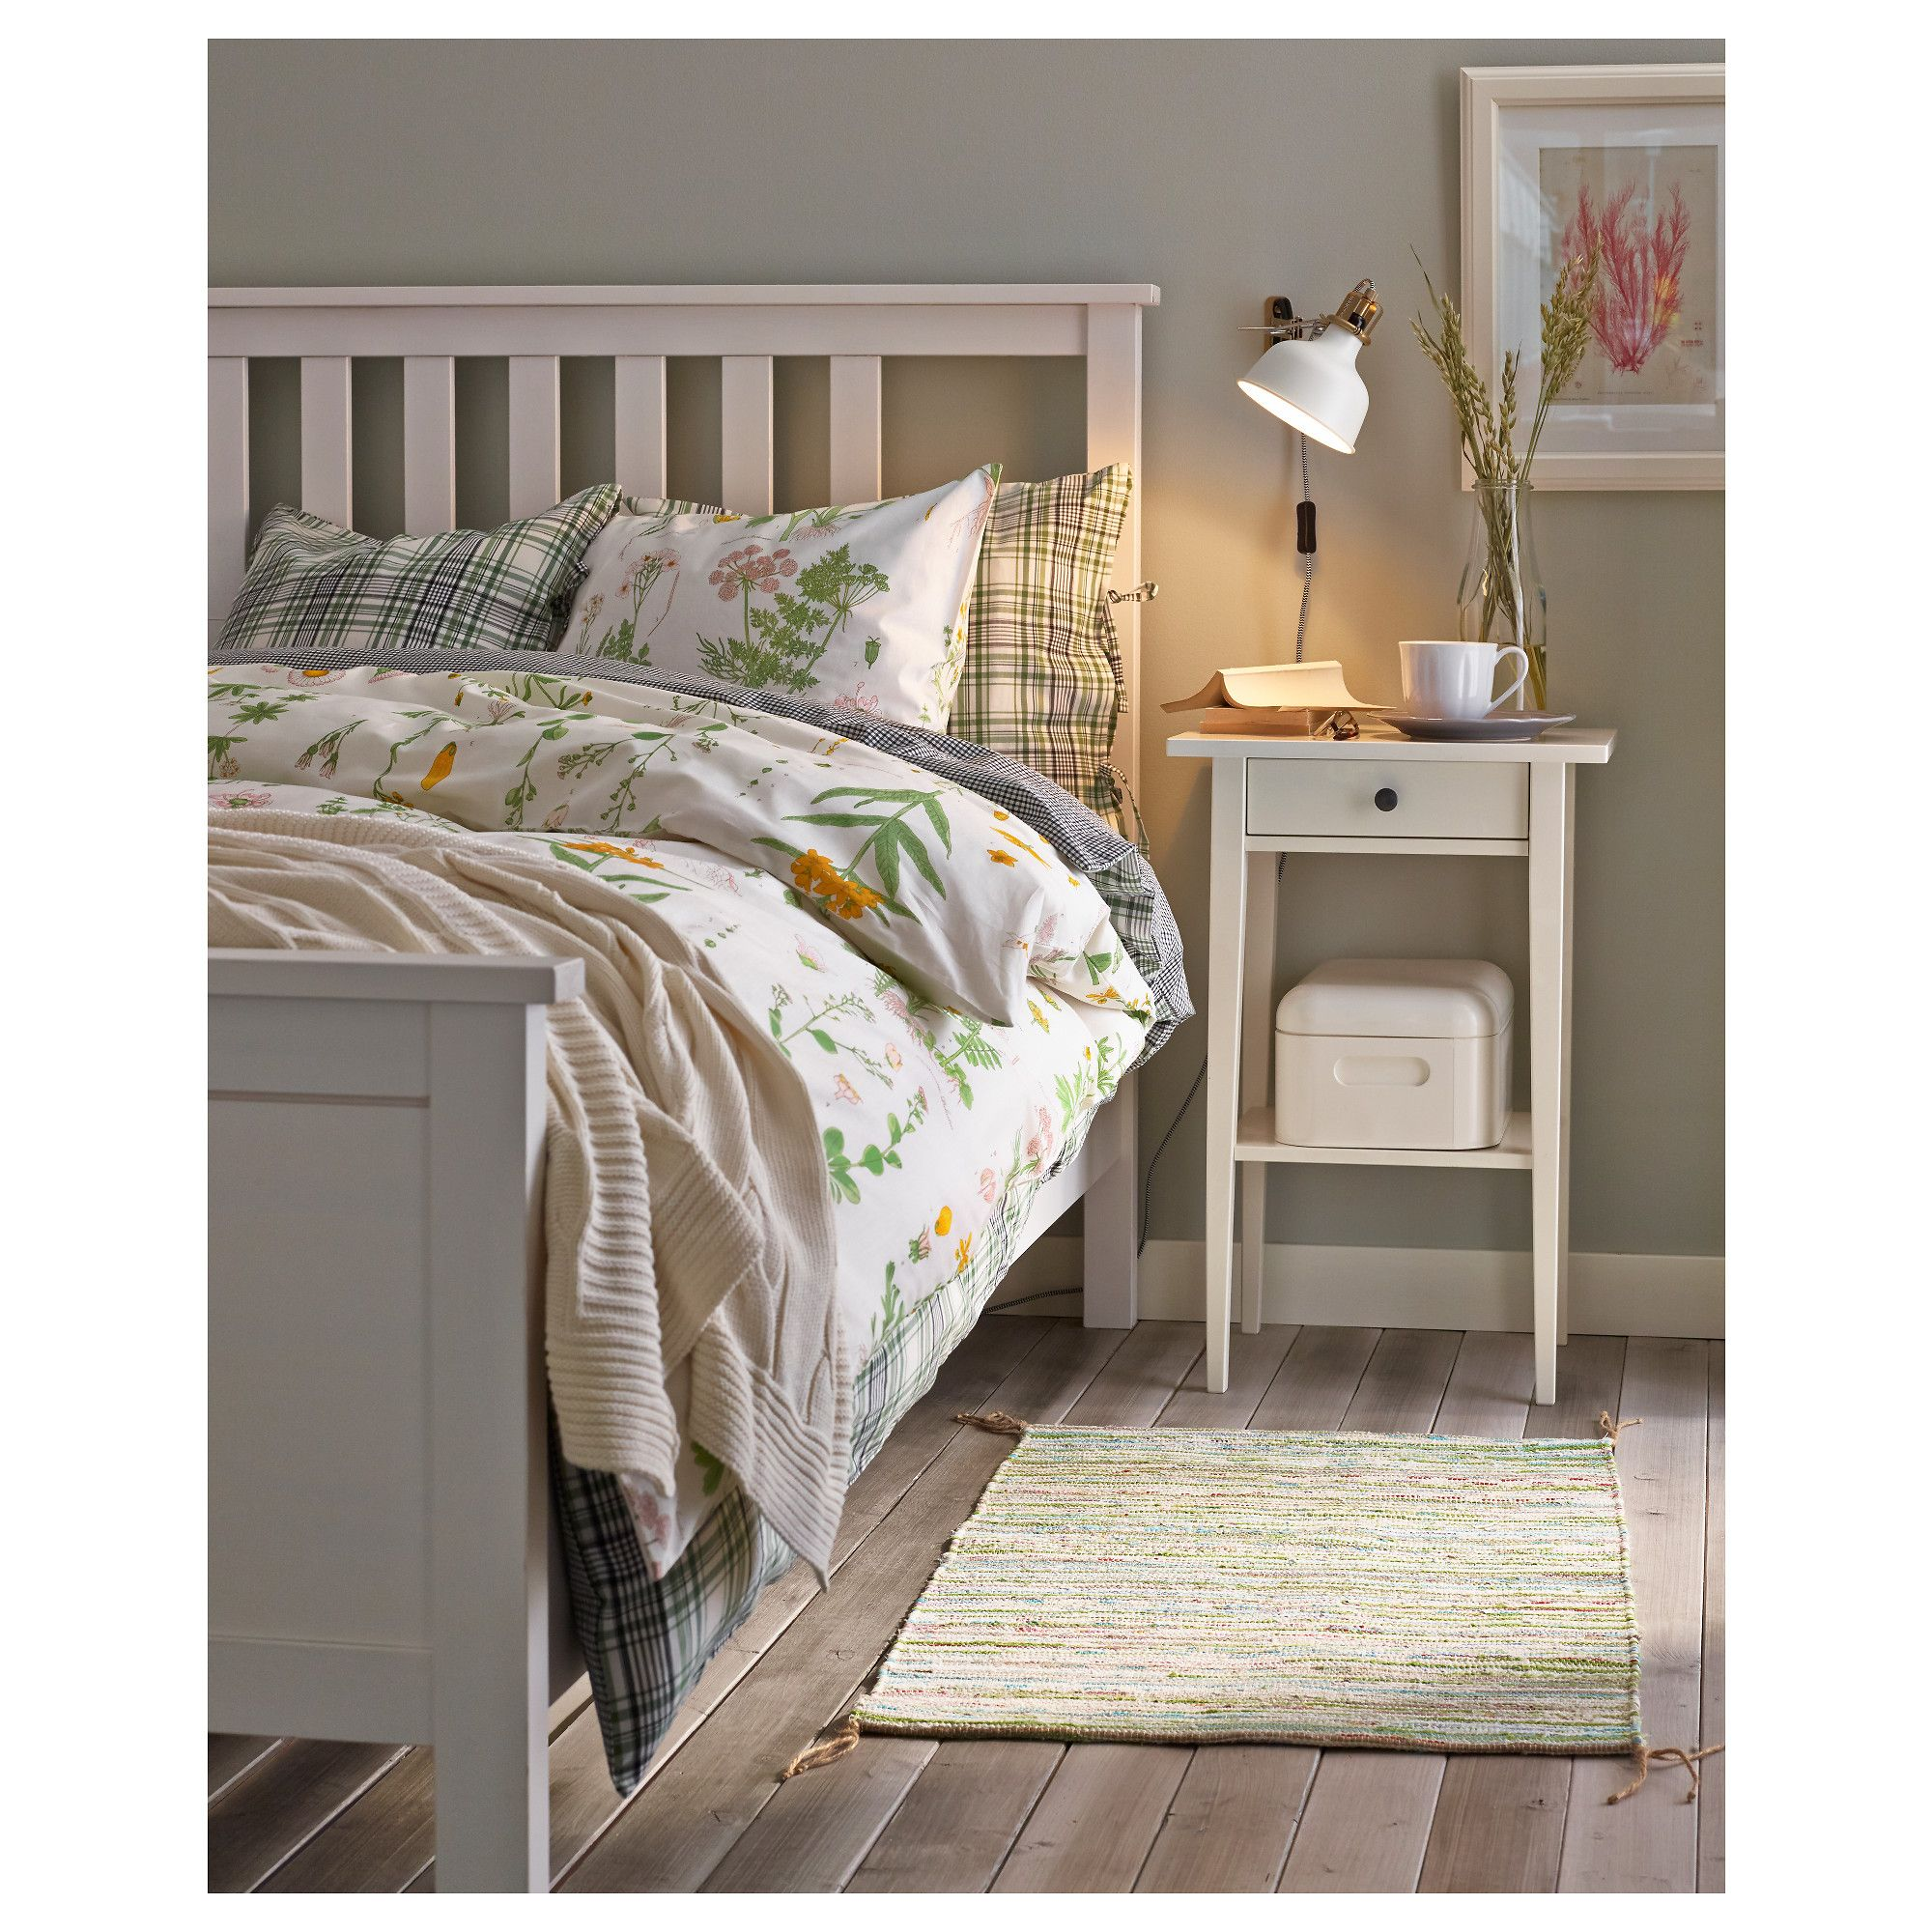 Ikea Hemnes Bed Frame White Stain Eidfjord Dreamy Bedrooms